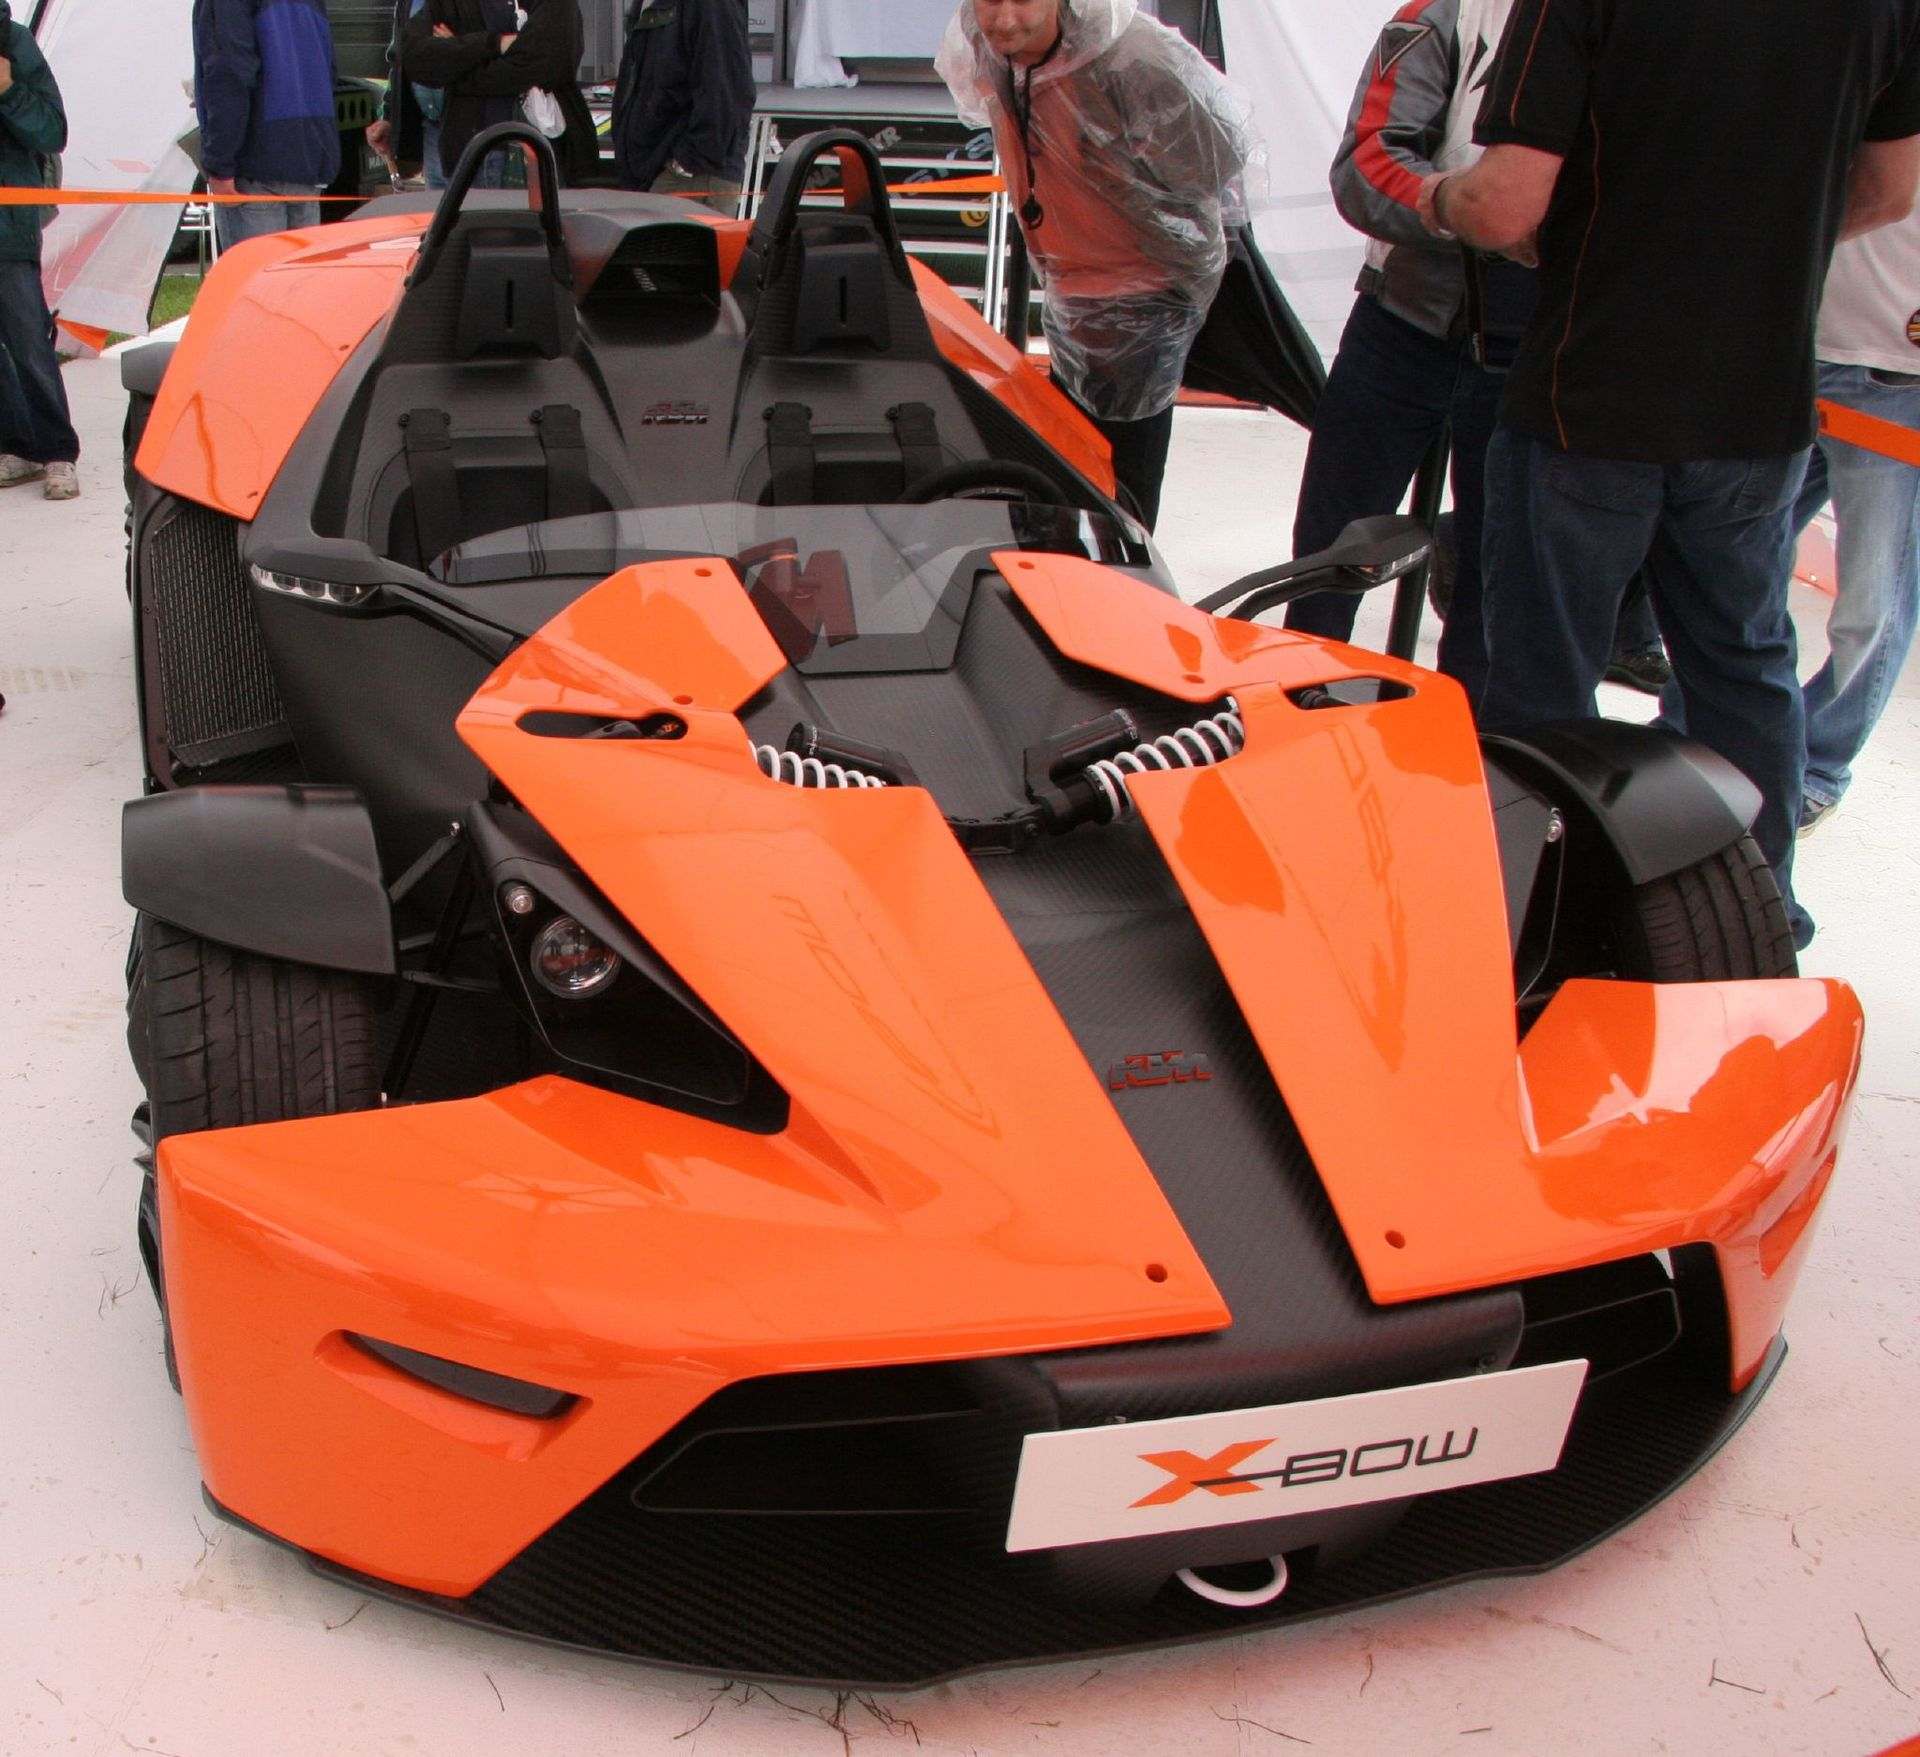 ktm x bow wikipedia la enciclopedia libre. Black Bedroom Furniture Sets. Home Design Ideas